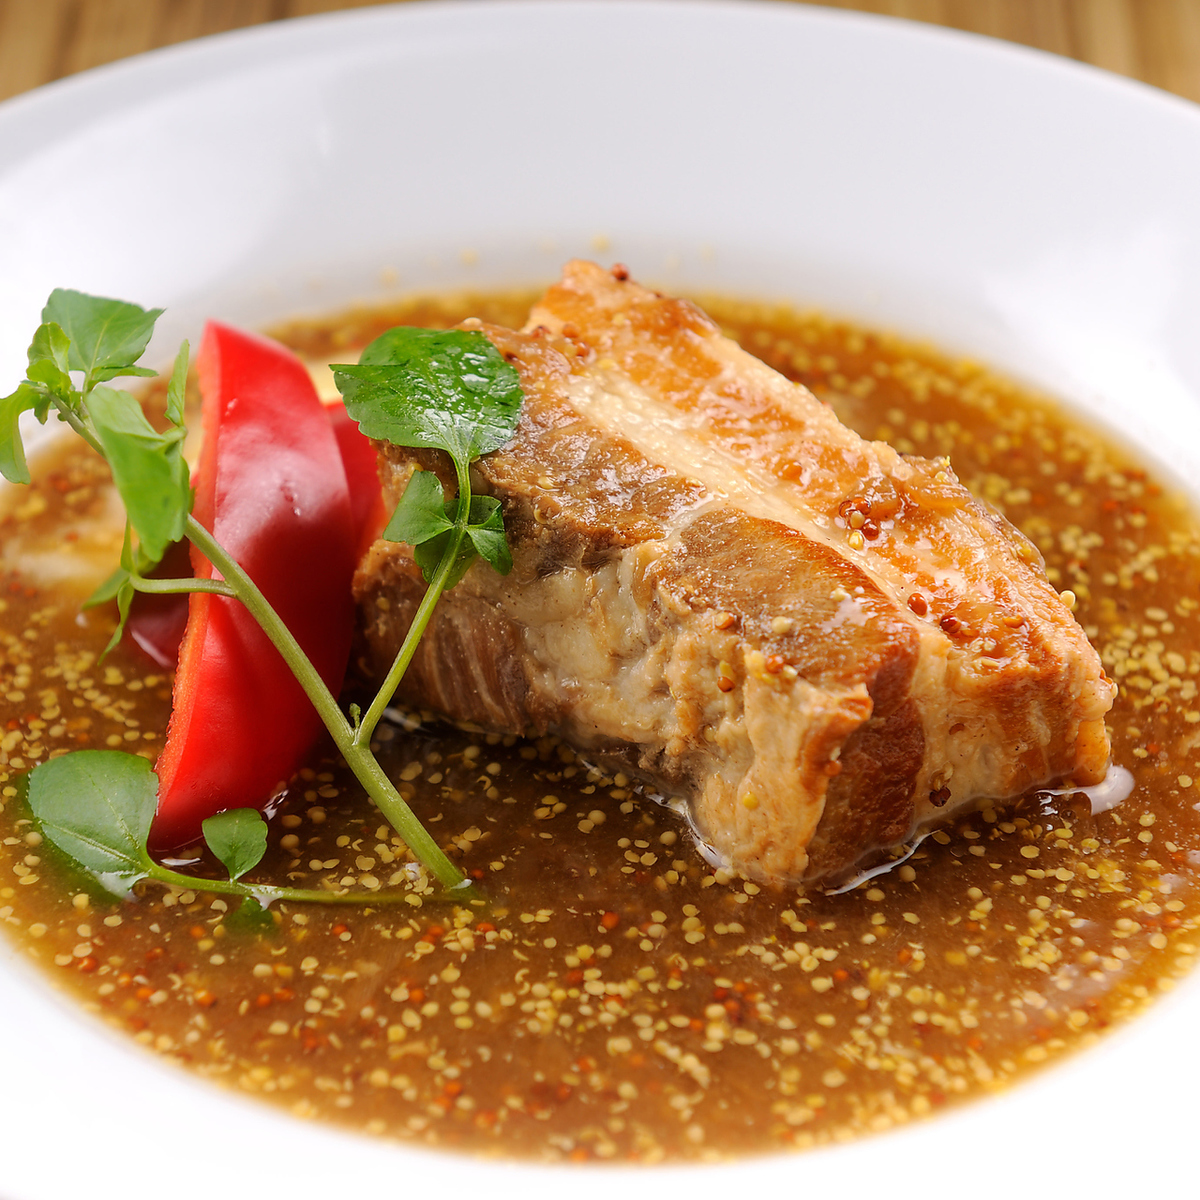 Pork belly, served with white wine stew